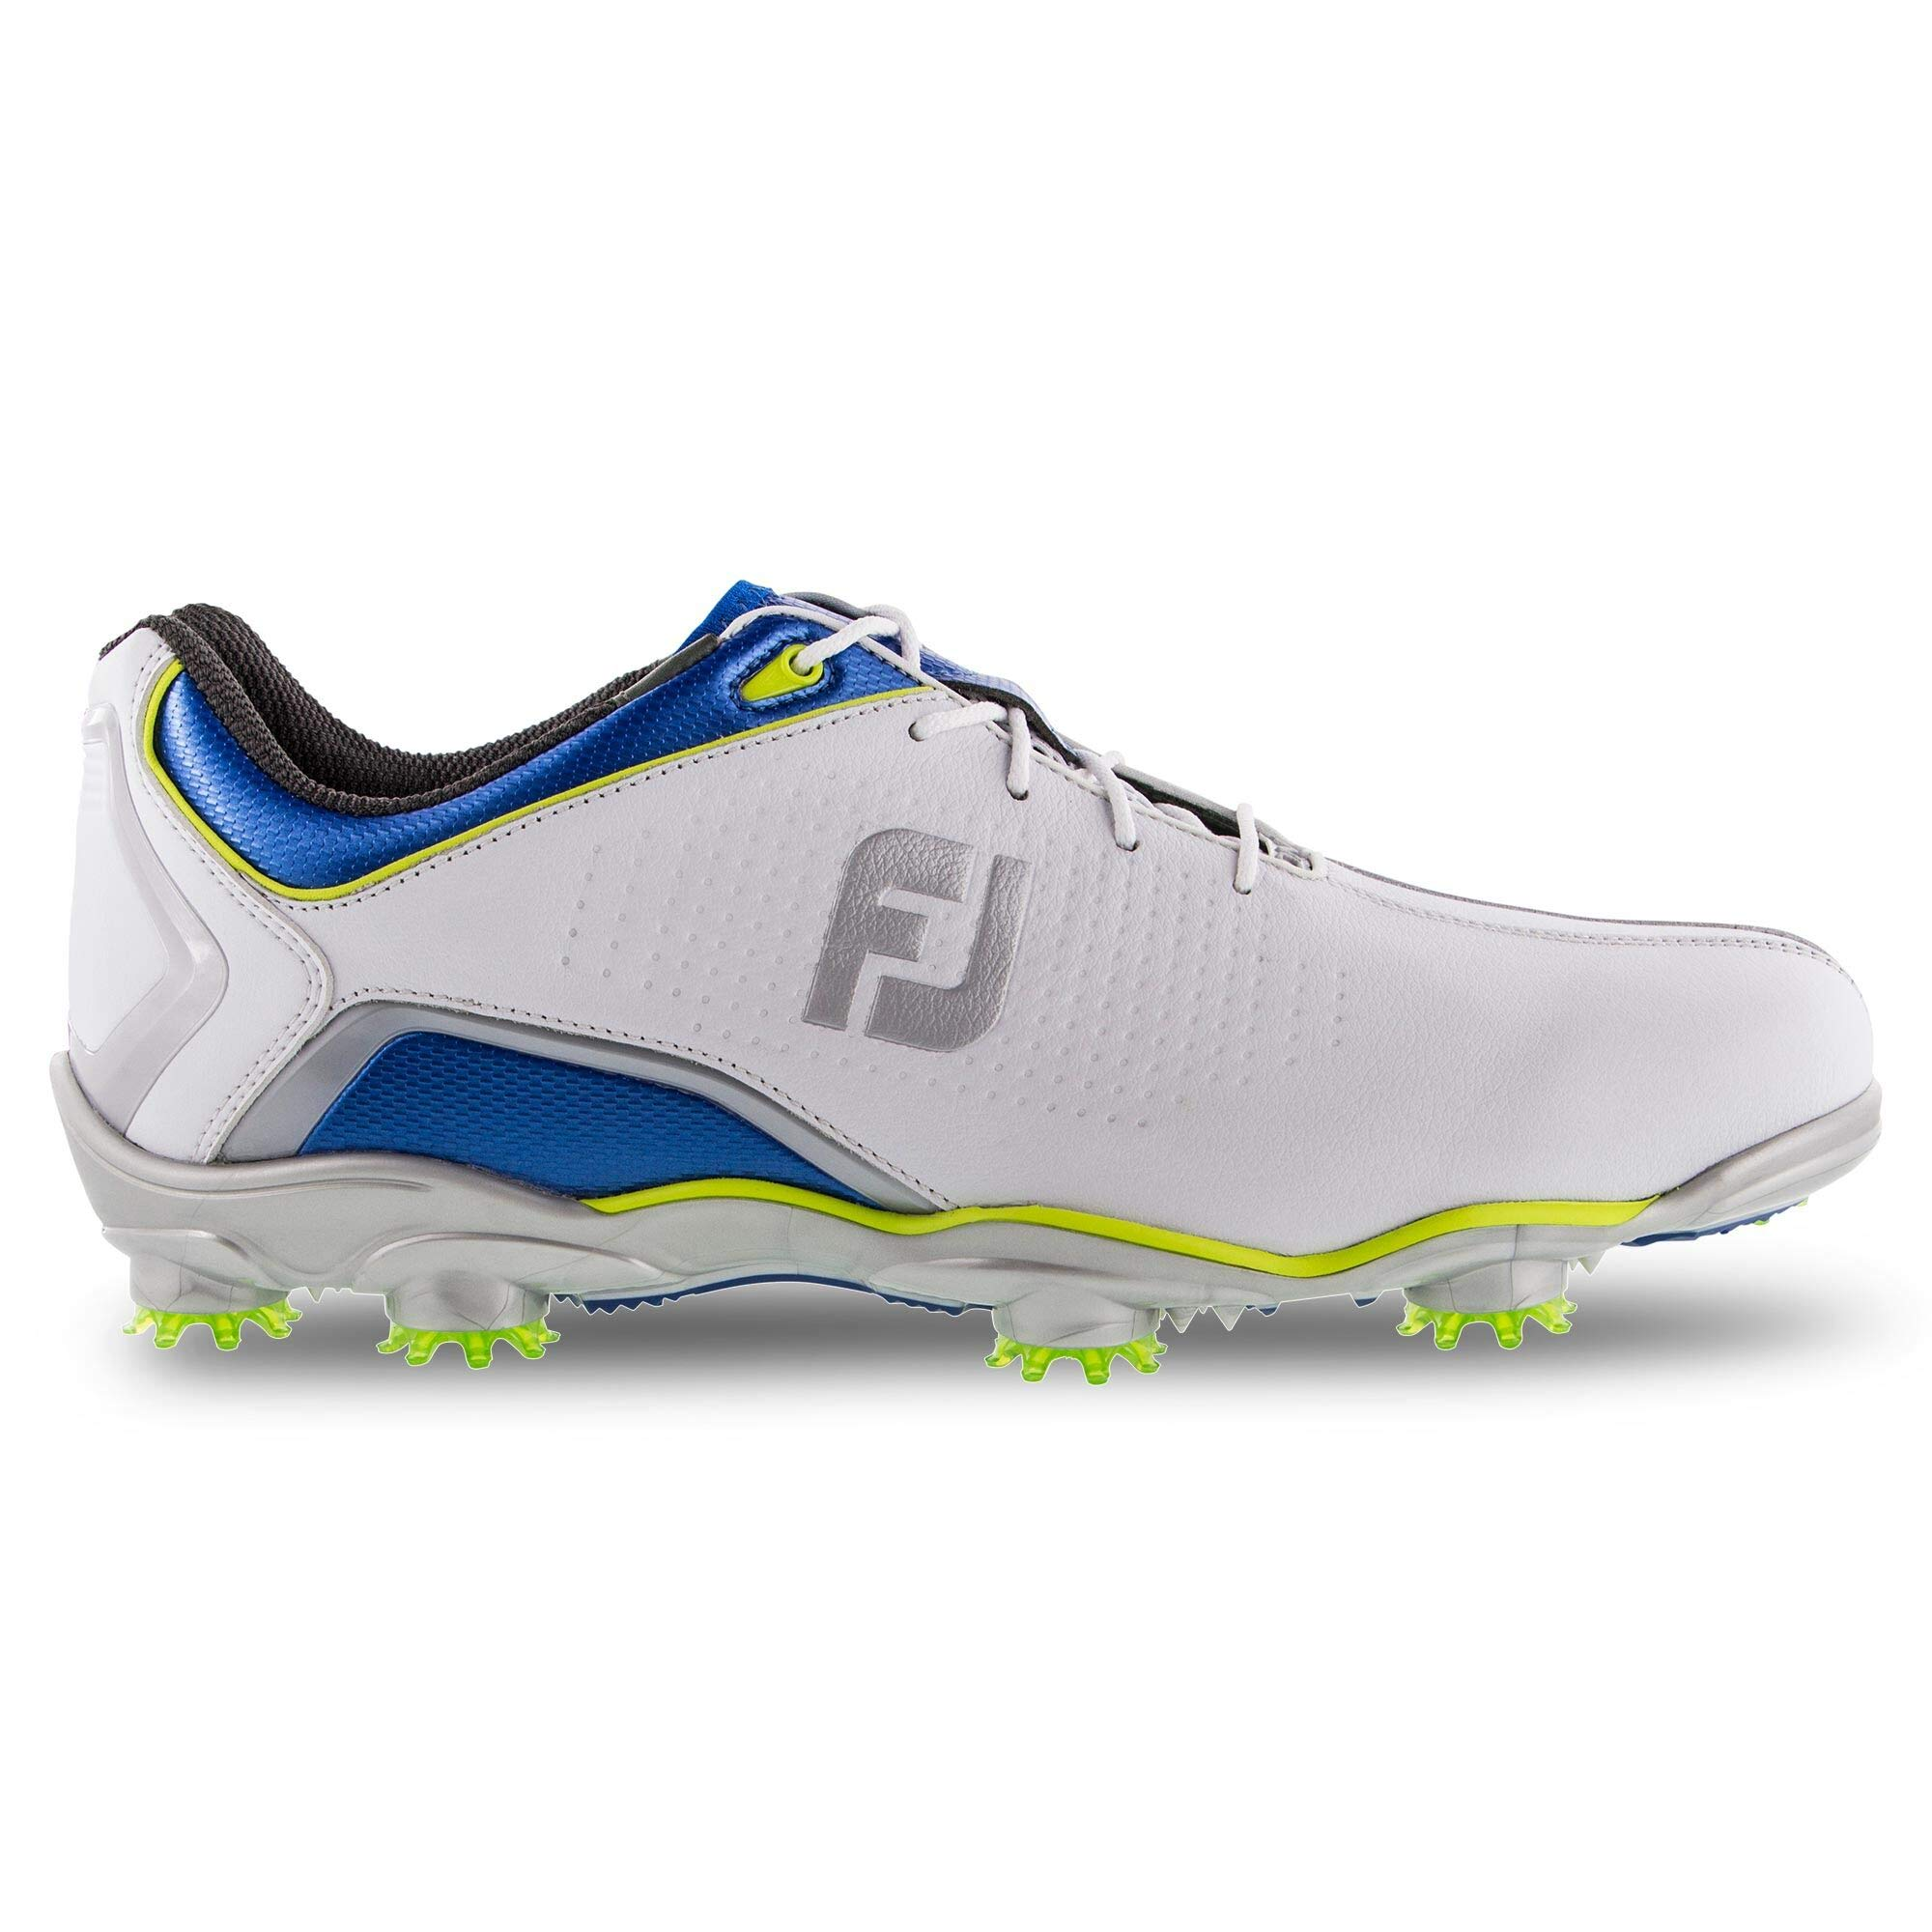 FootJoy Men's D.N.A. Helix Limited Edition-Previous Season Style Golf Shoes, White/Dusk/Lime, 9.5 W US by FootJoy